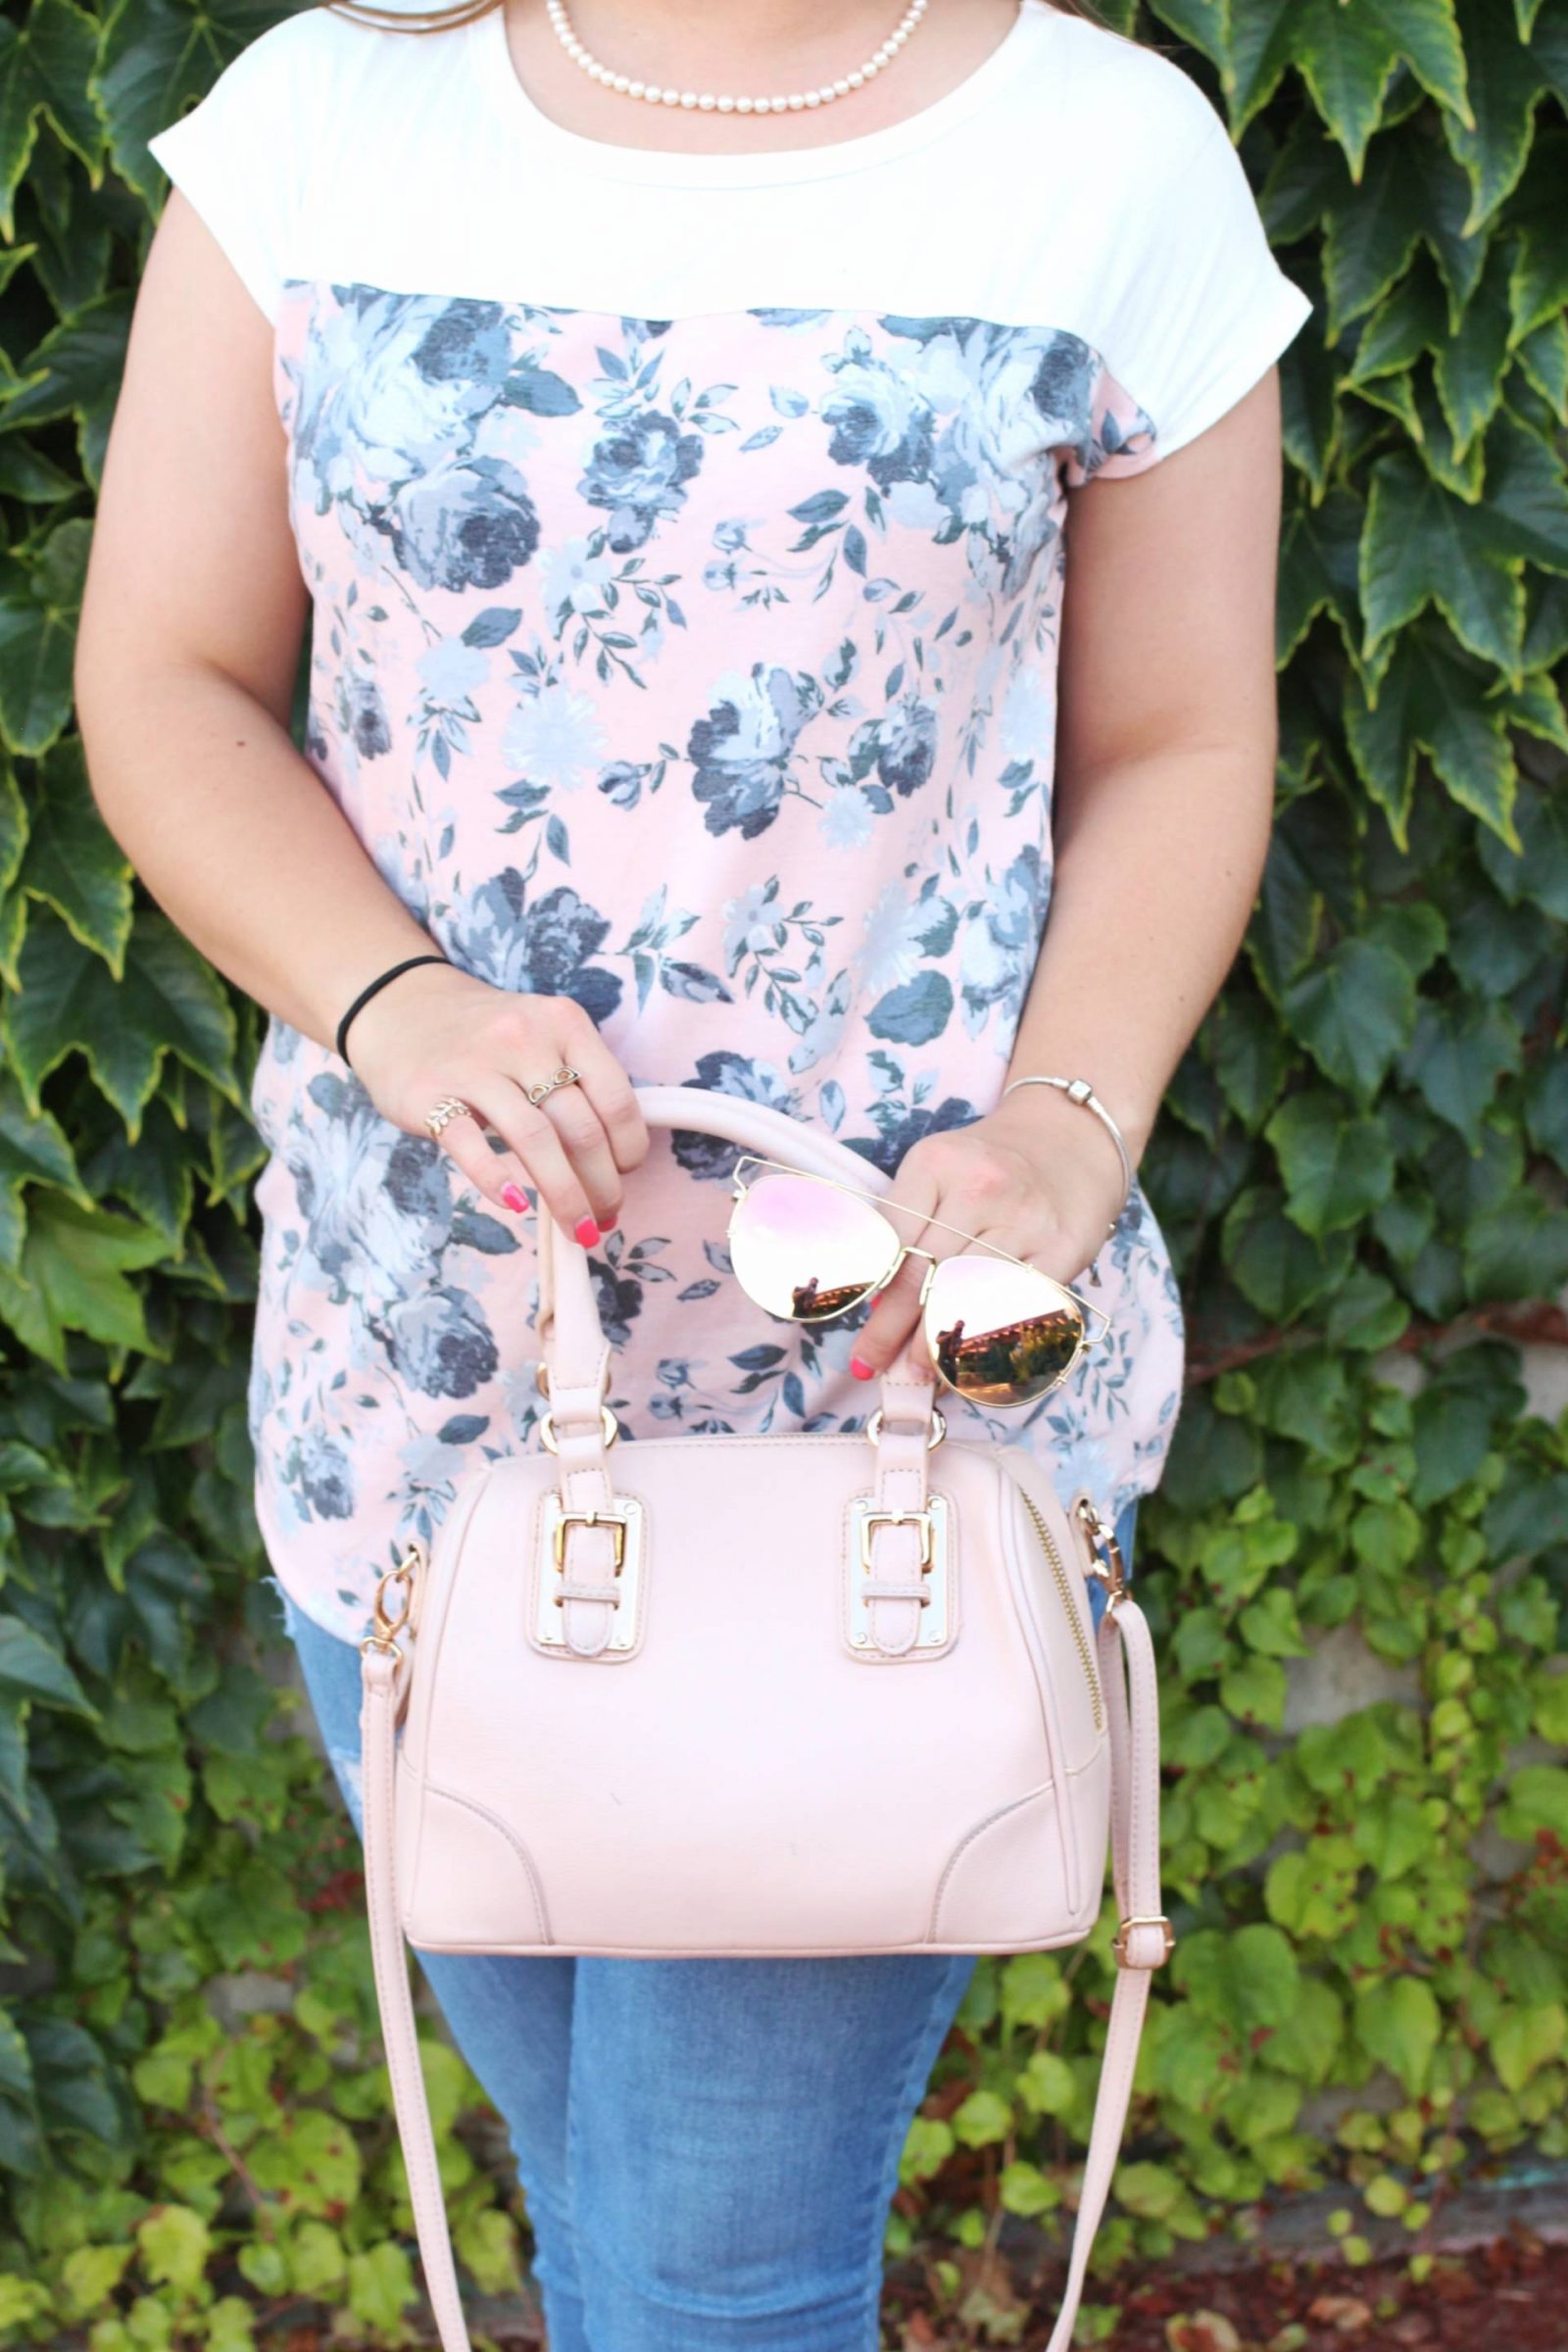 Blushing into the School Year - Pearls and Polkadots